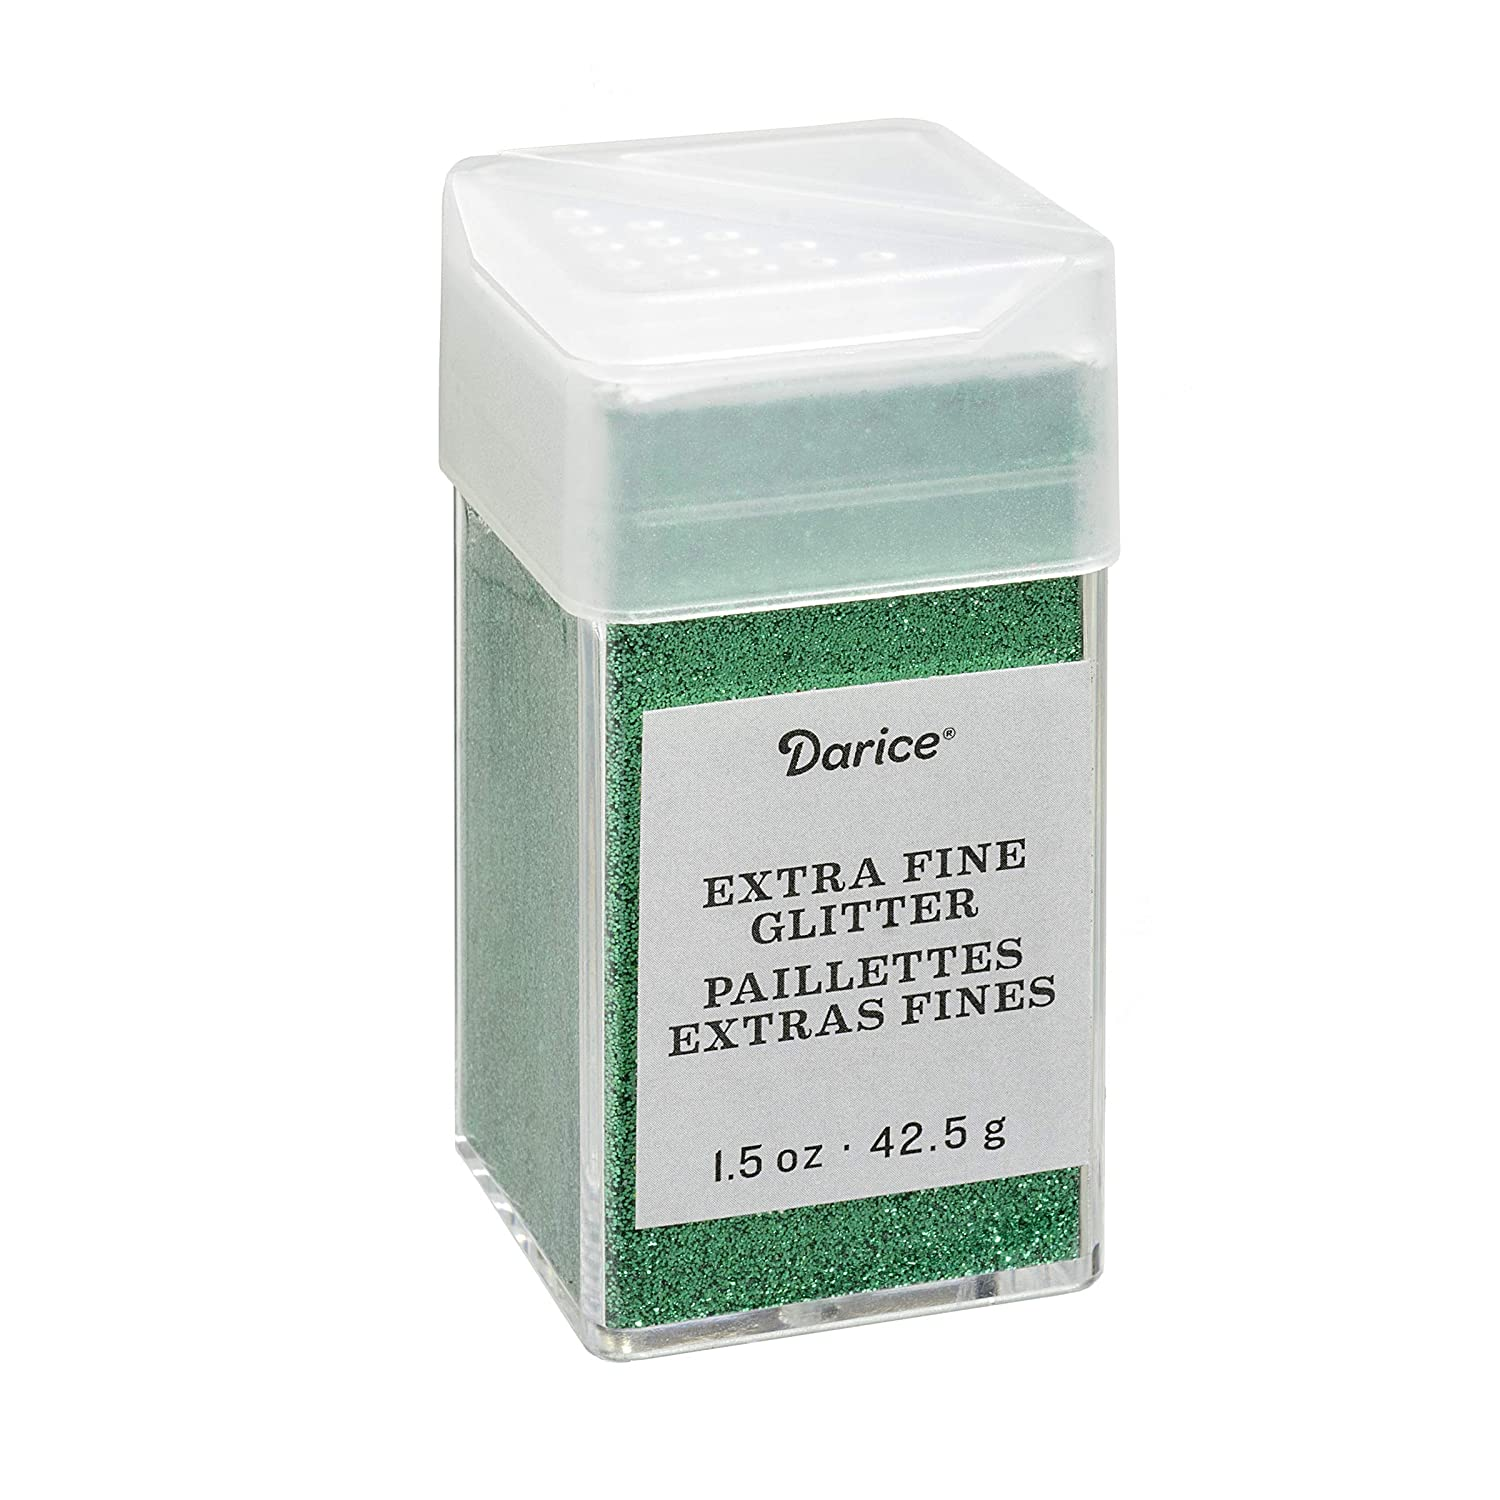 2.7 Darice Emerald Green Extra Fine Glitter 1.5 Ounces Canister w//Pour or Shake Lid